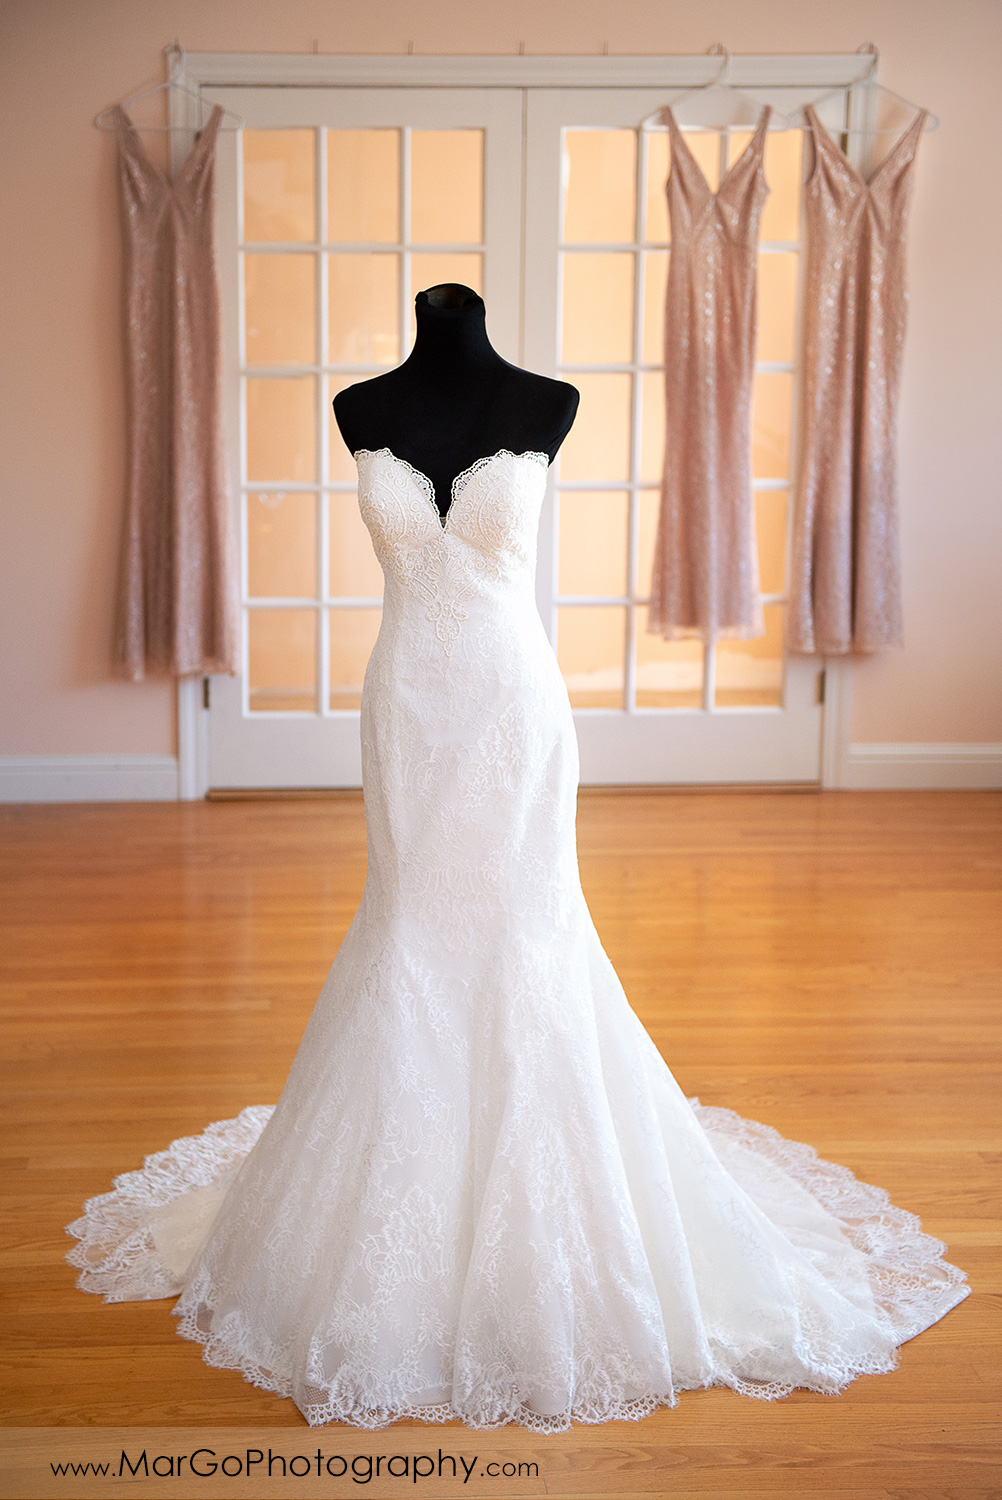 wedding dress with bridesmaids dresses in the background